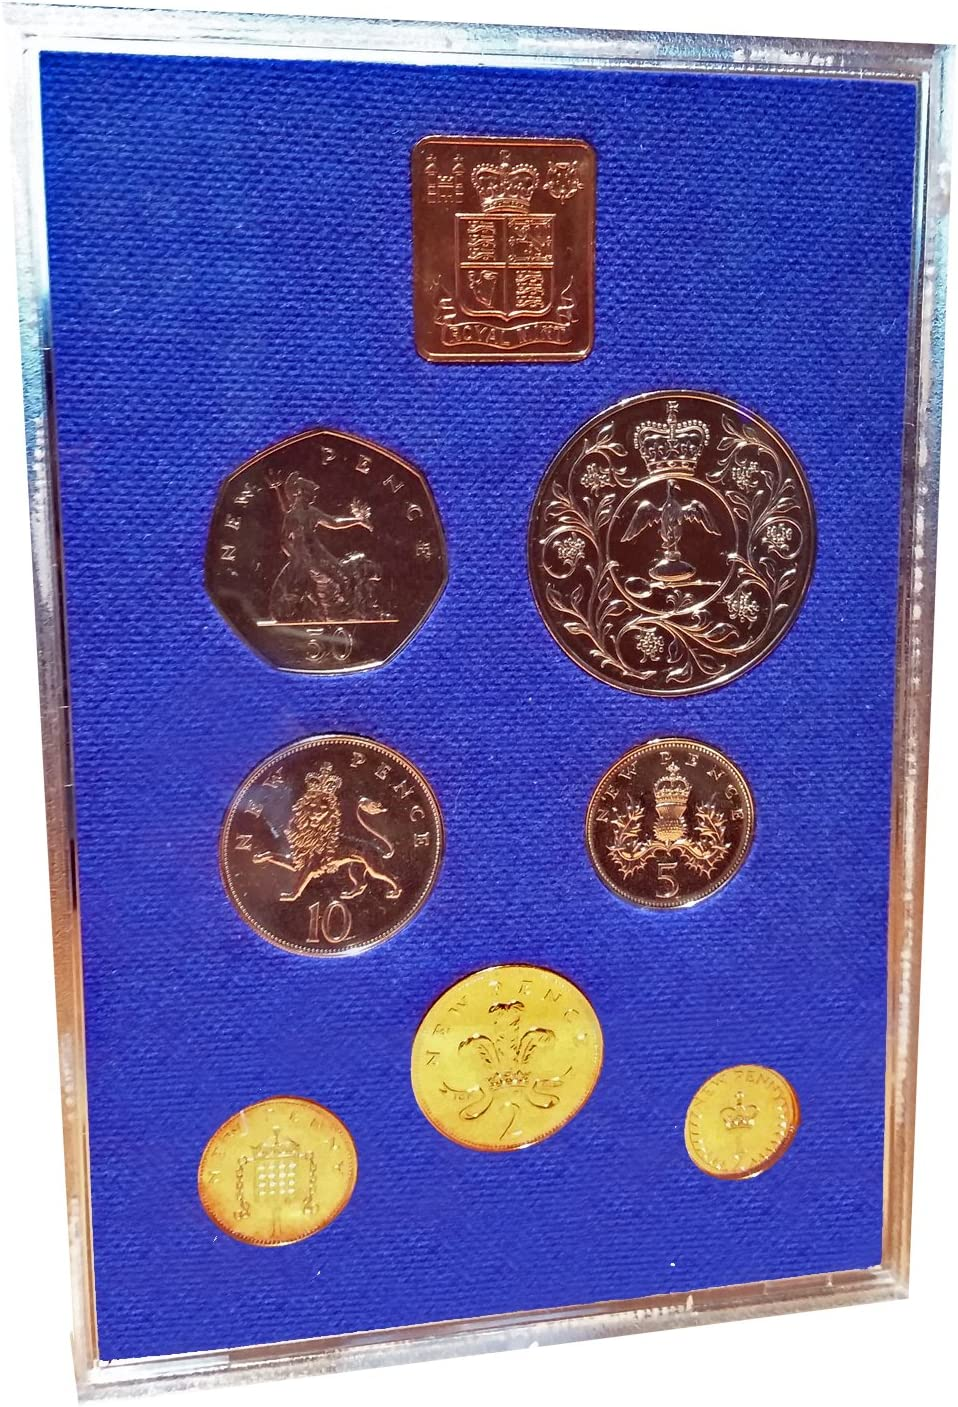 Proof Great Britain 1971 5 New Pence~Upgrade To Proof Coins~Free Shipping